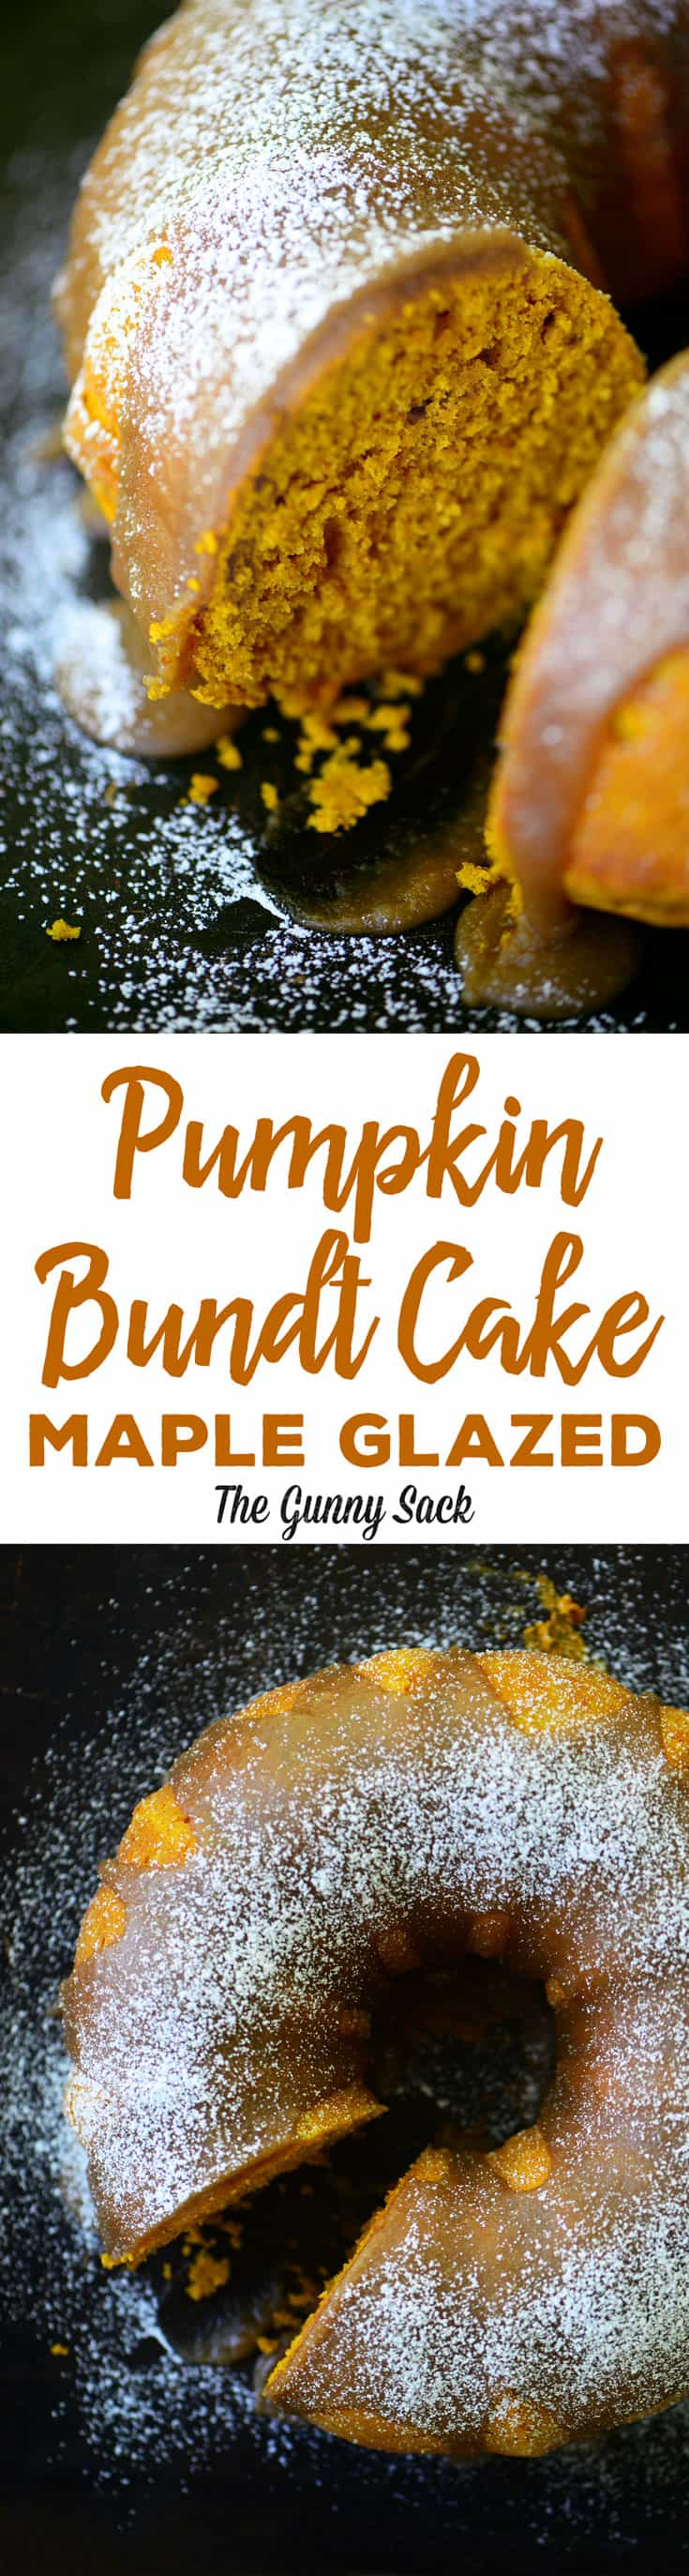 A moist Pumpkin Bundt Cake with a Maple Glaze. It's fast and easy to make with pumpkin puree and a cake mix. The bundt pan shape is gorgeous on a cake plate. #pumpkincake #pumpkincrecipes